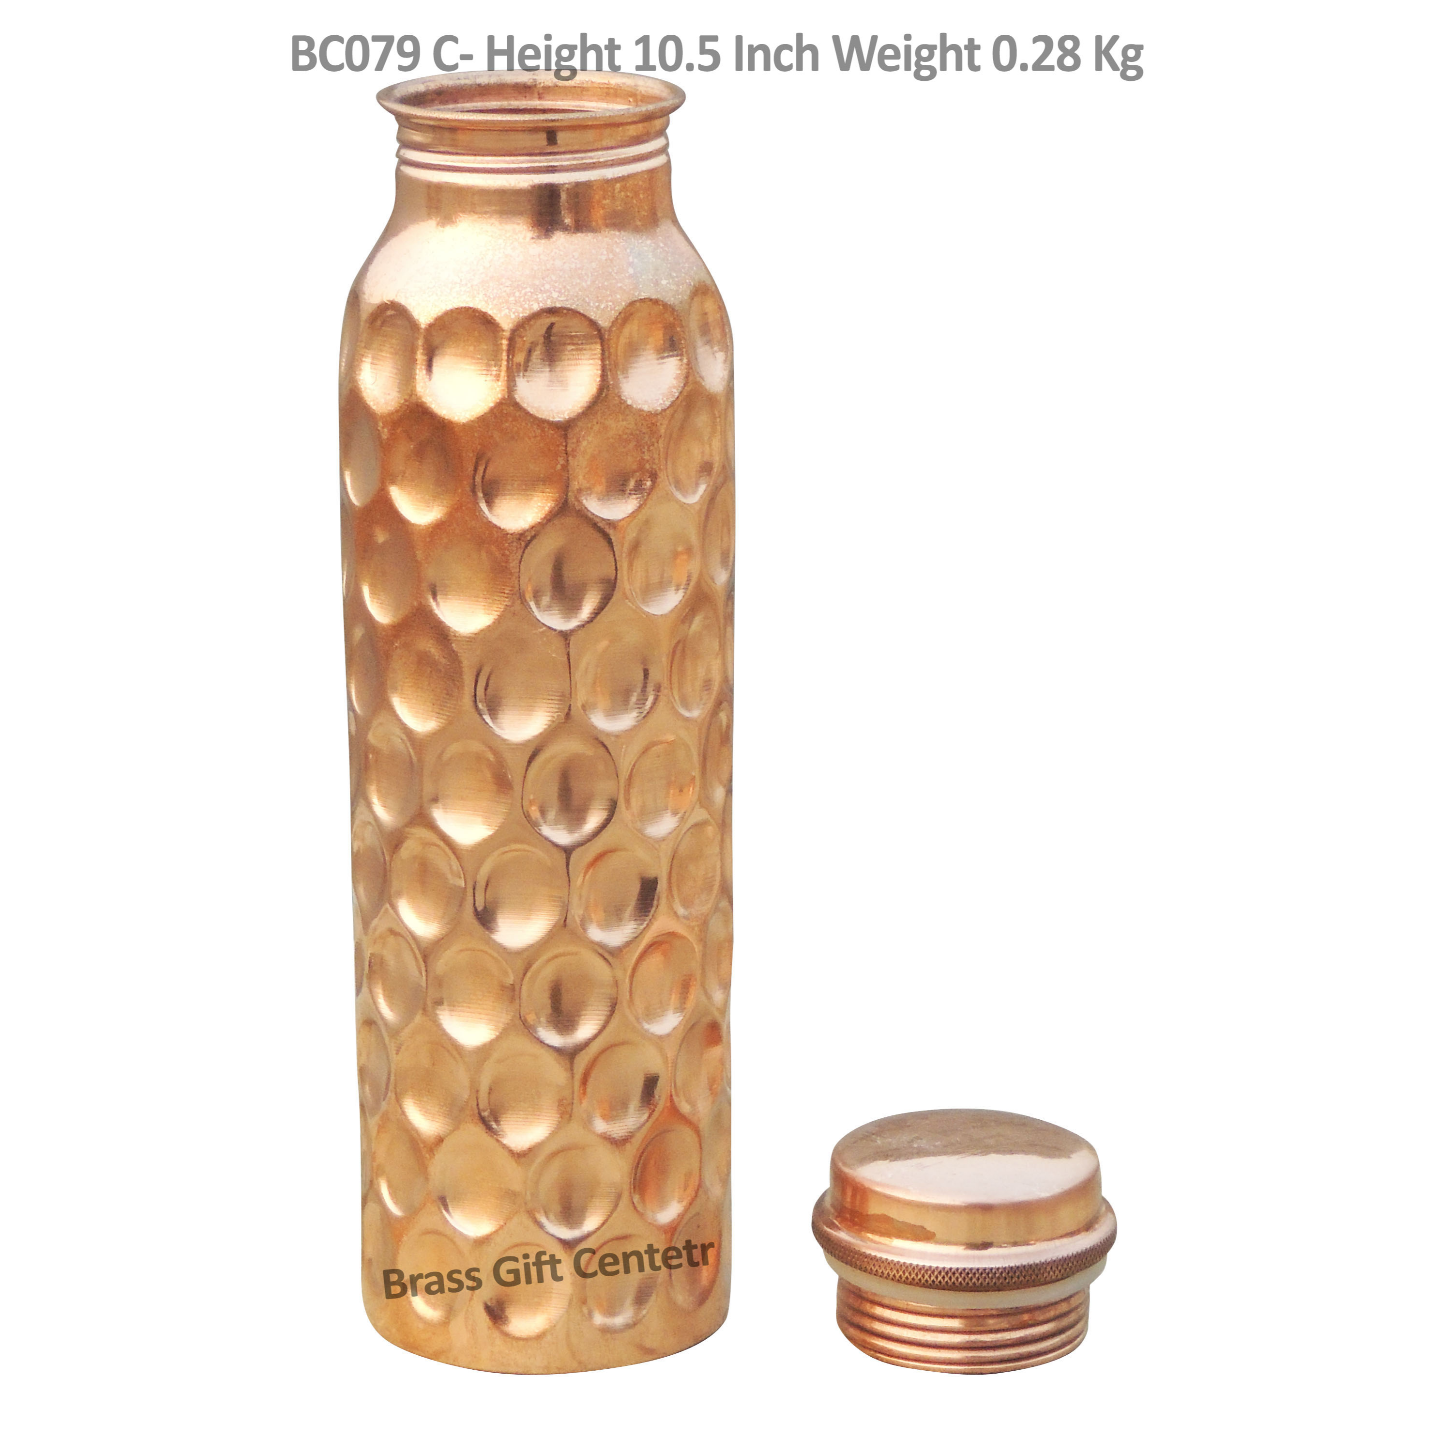 Copper Bottle Diamond (BC079 C)